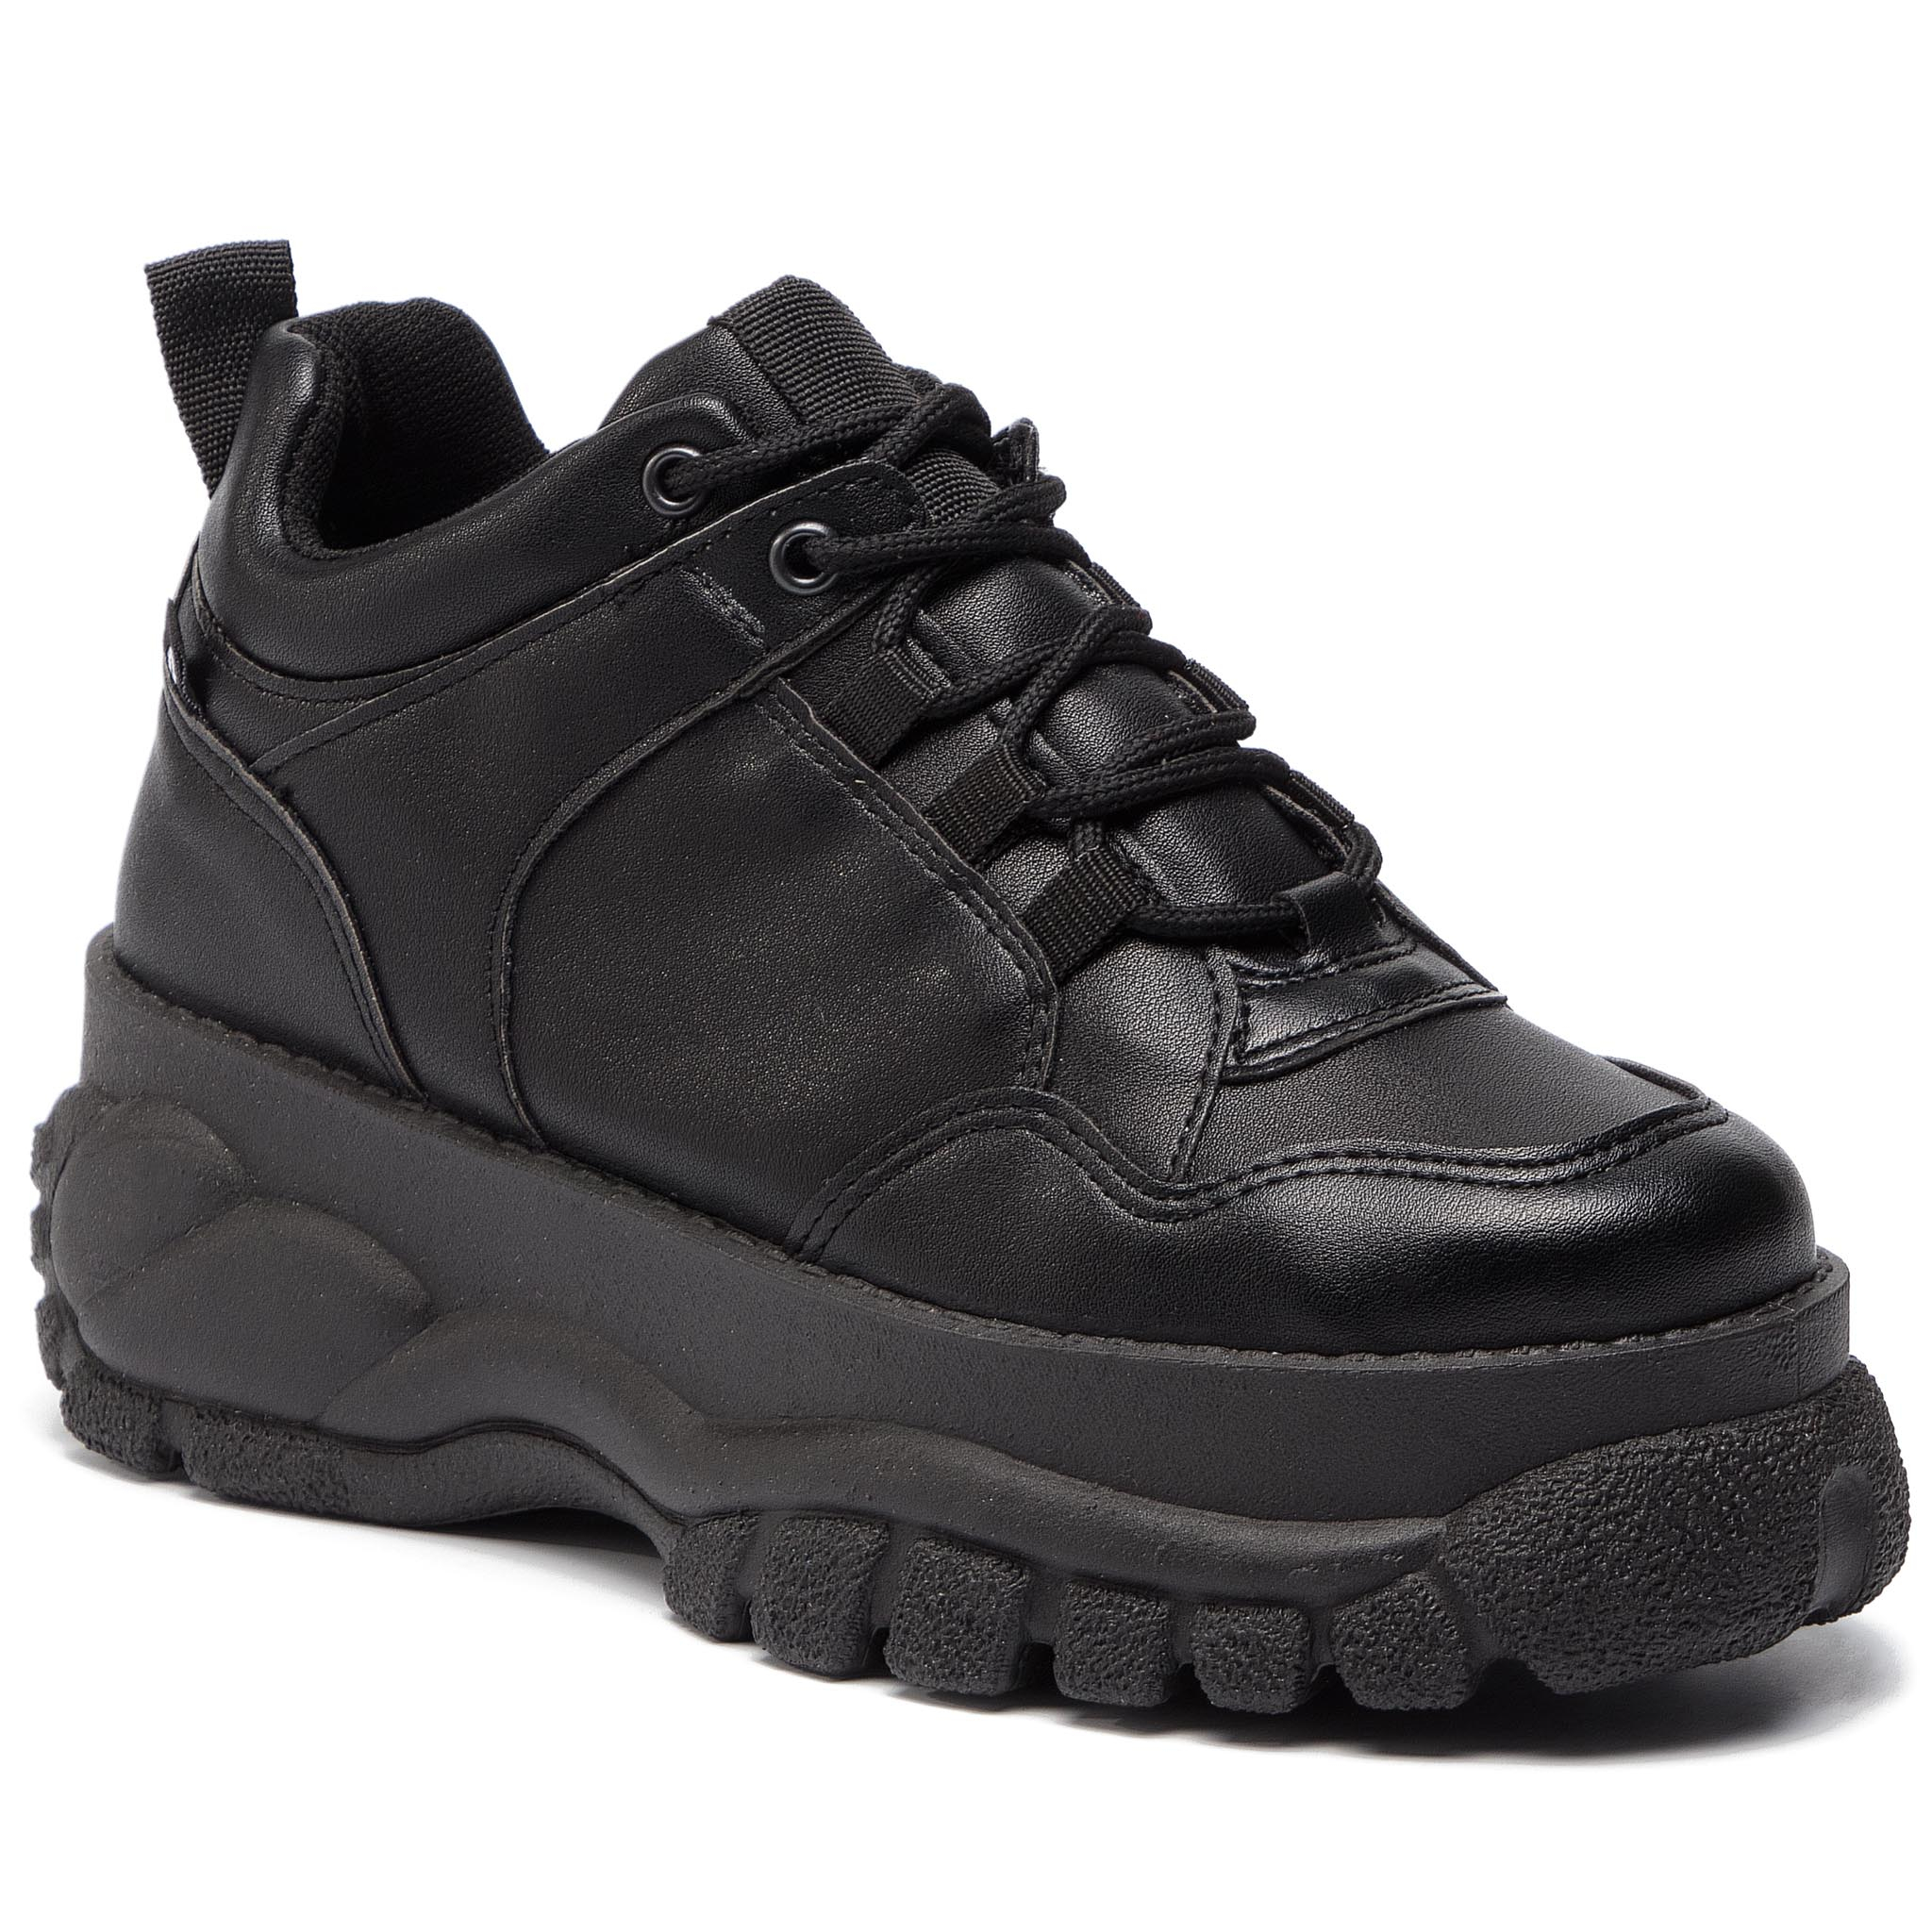 Image of Sneakers ALTERCORE - Mossi Black